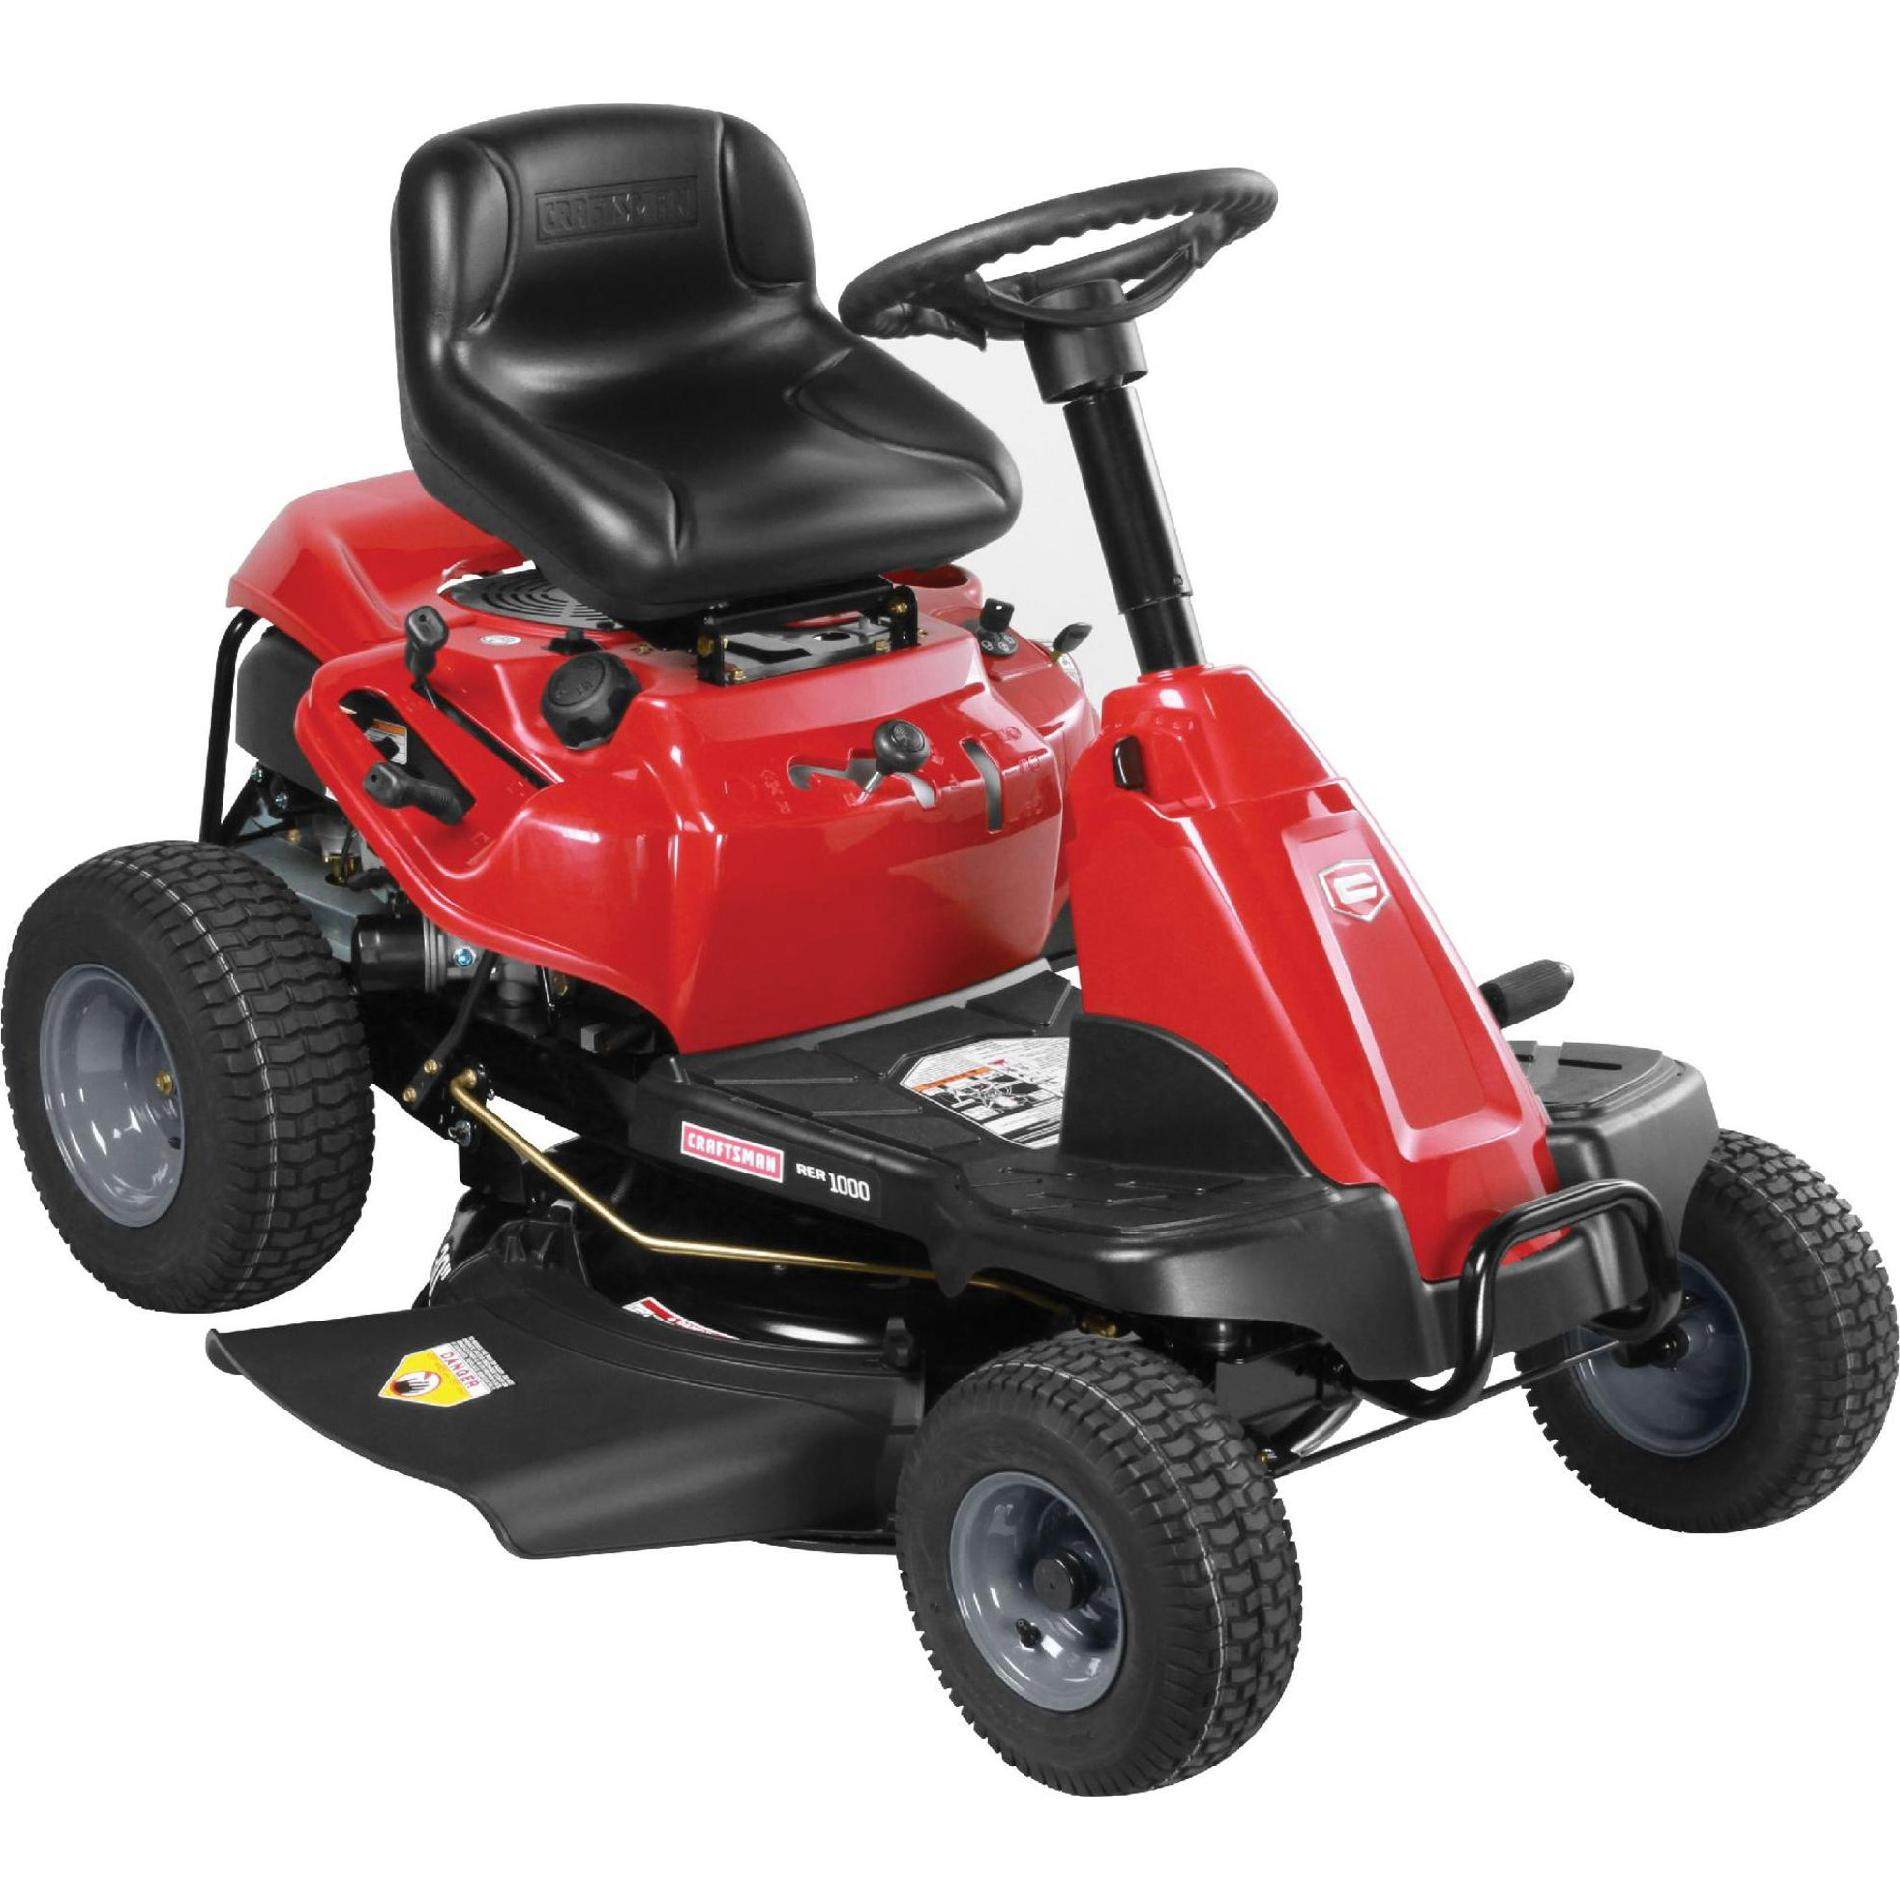 Craftsman - 13b226jd299 Ca 30 6-speed 420cc Rear Engine Riding Mower Sears Outlet